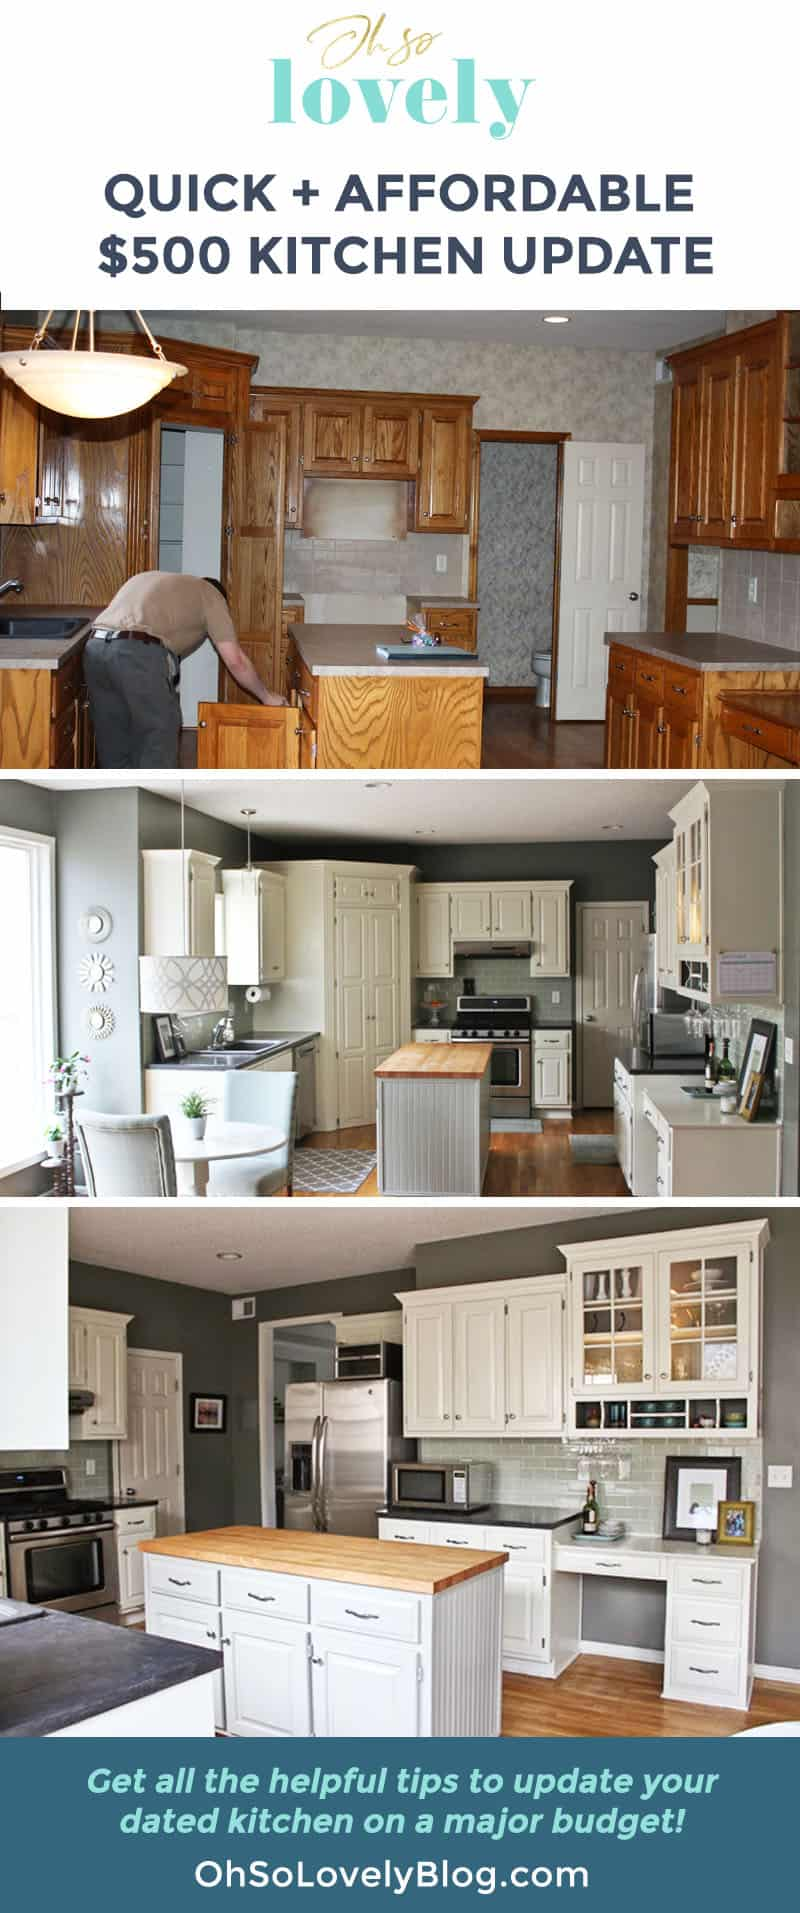 An affordable $500 kitchen remodel on a major budget